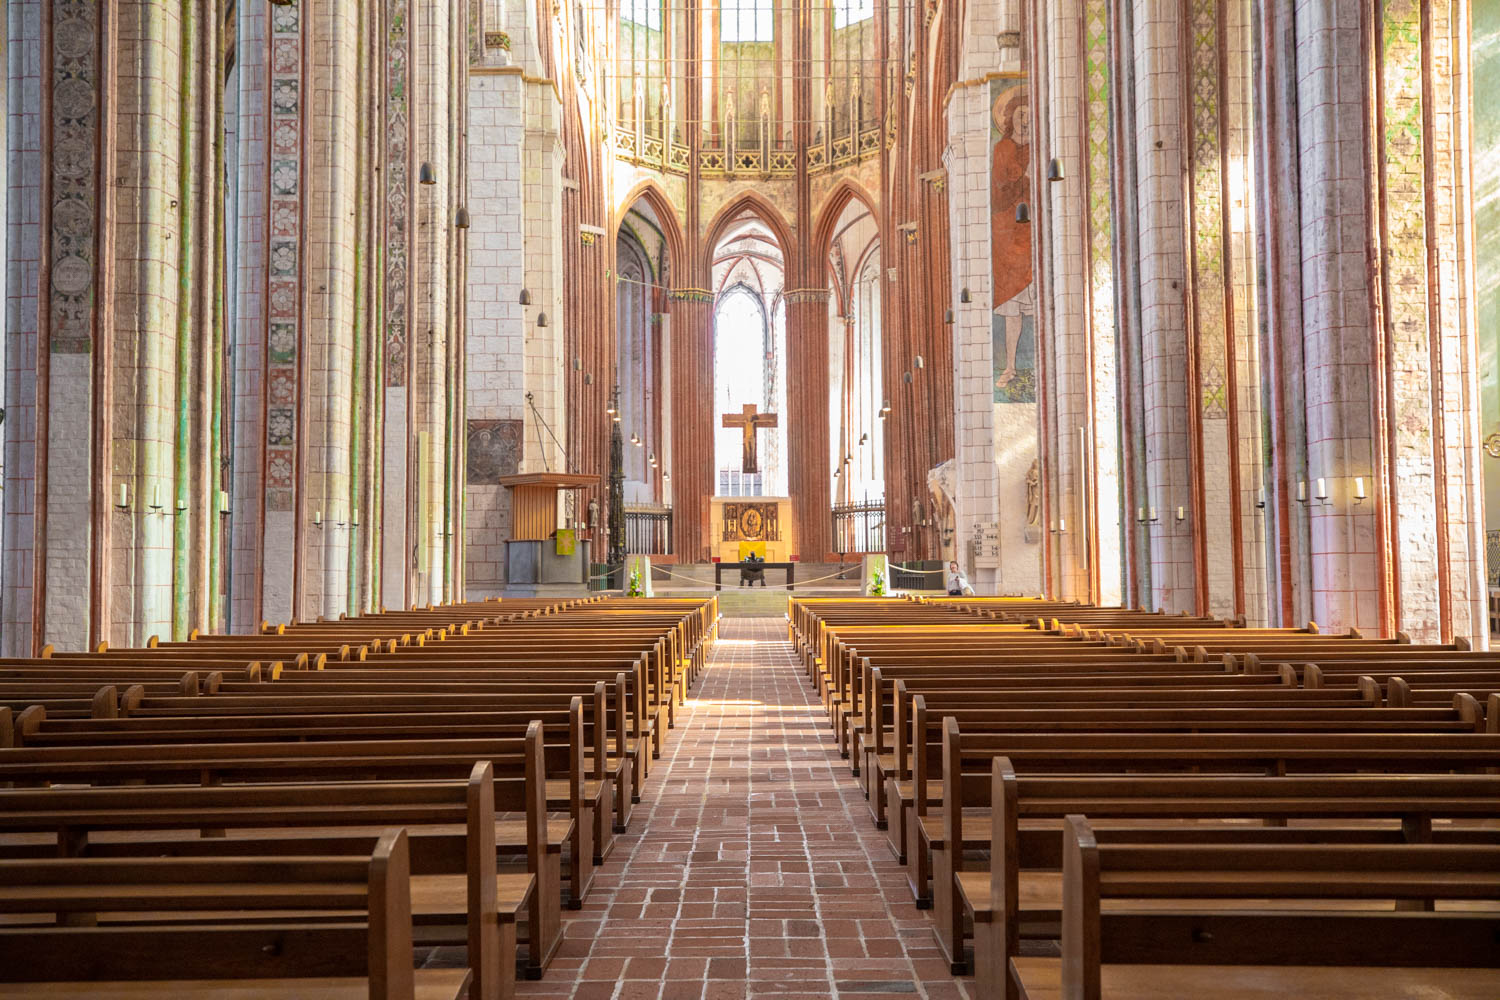 Visit the churches of Lubeck